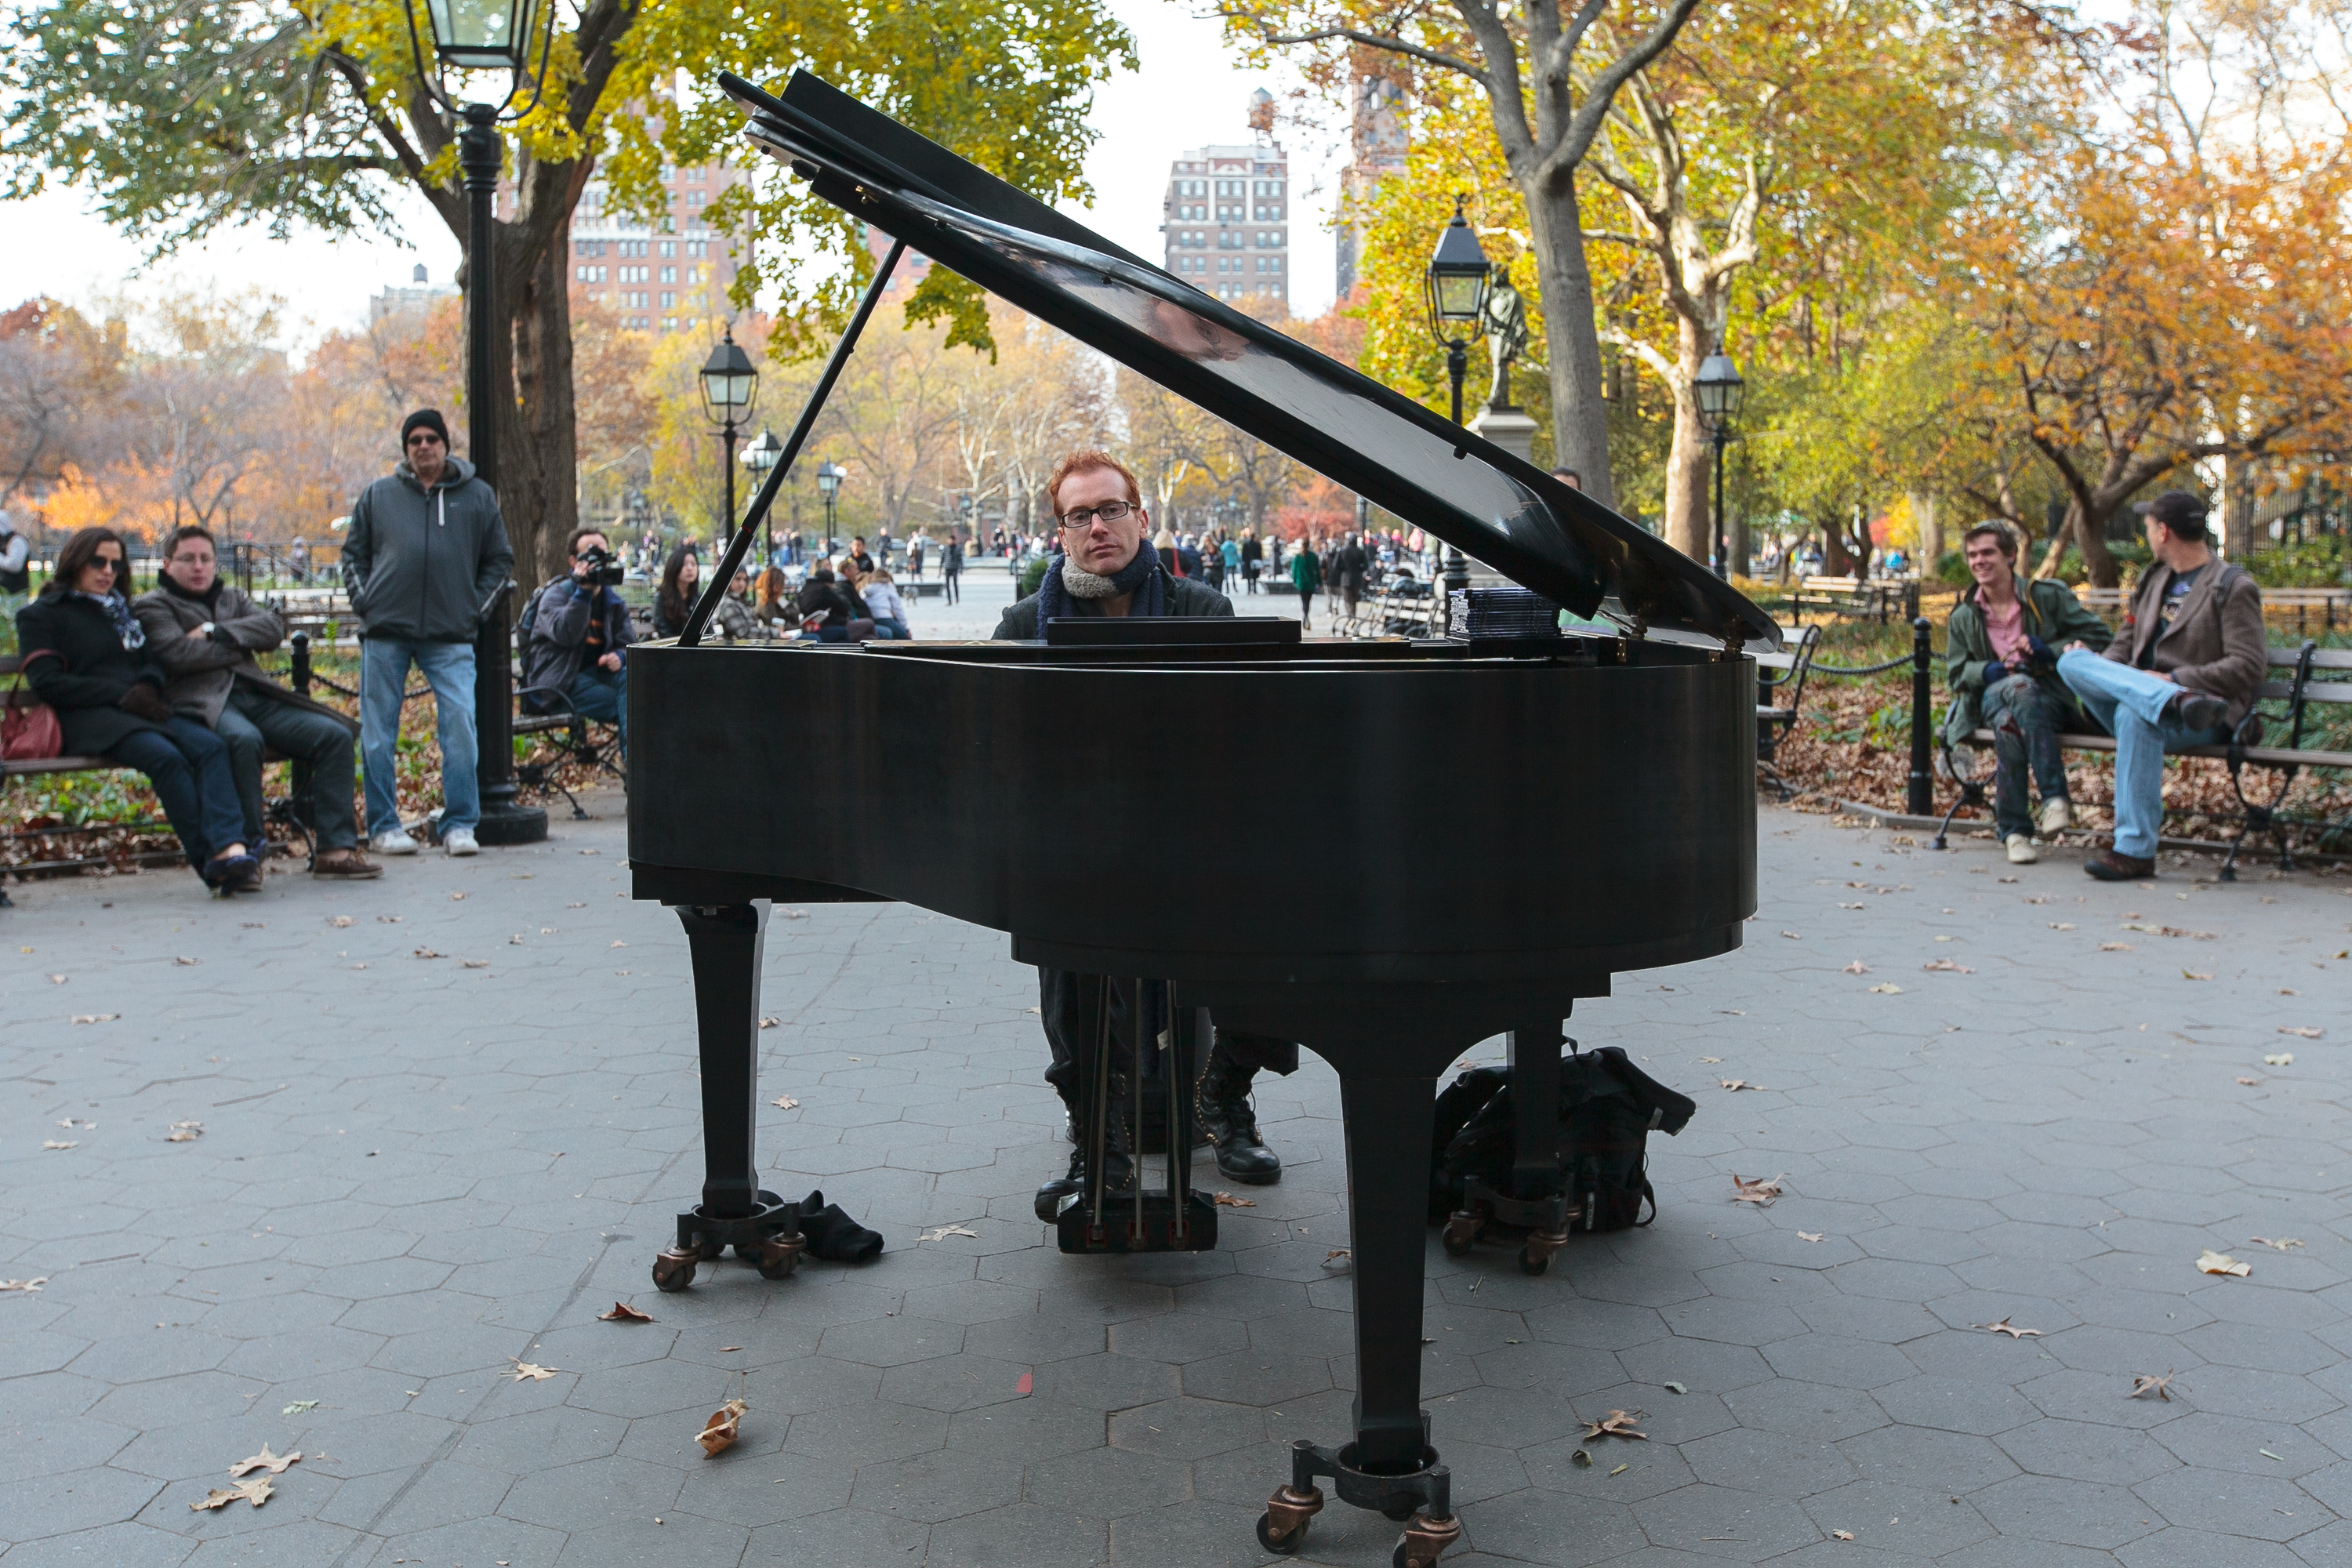 colin huggins piano guy washington square park